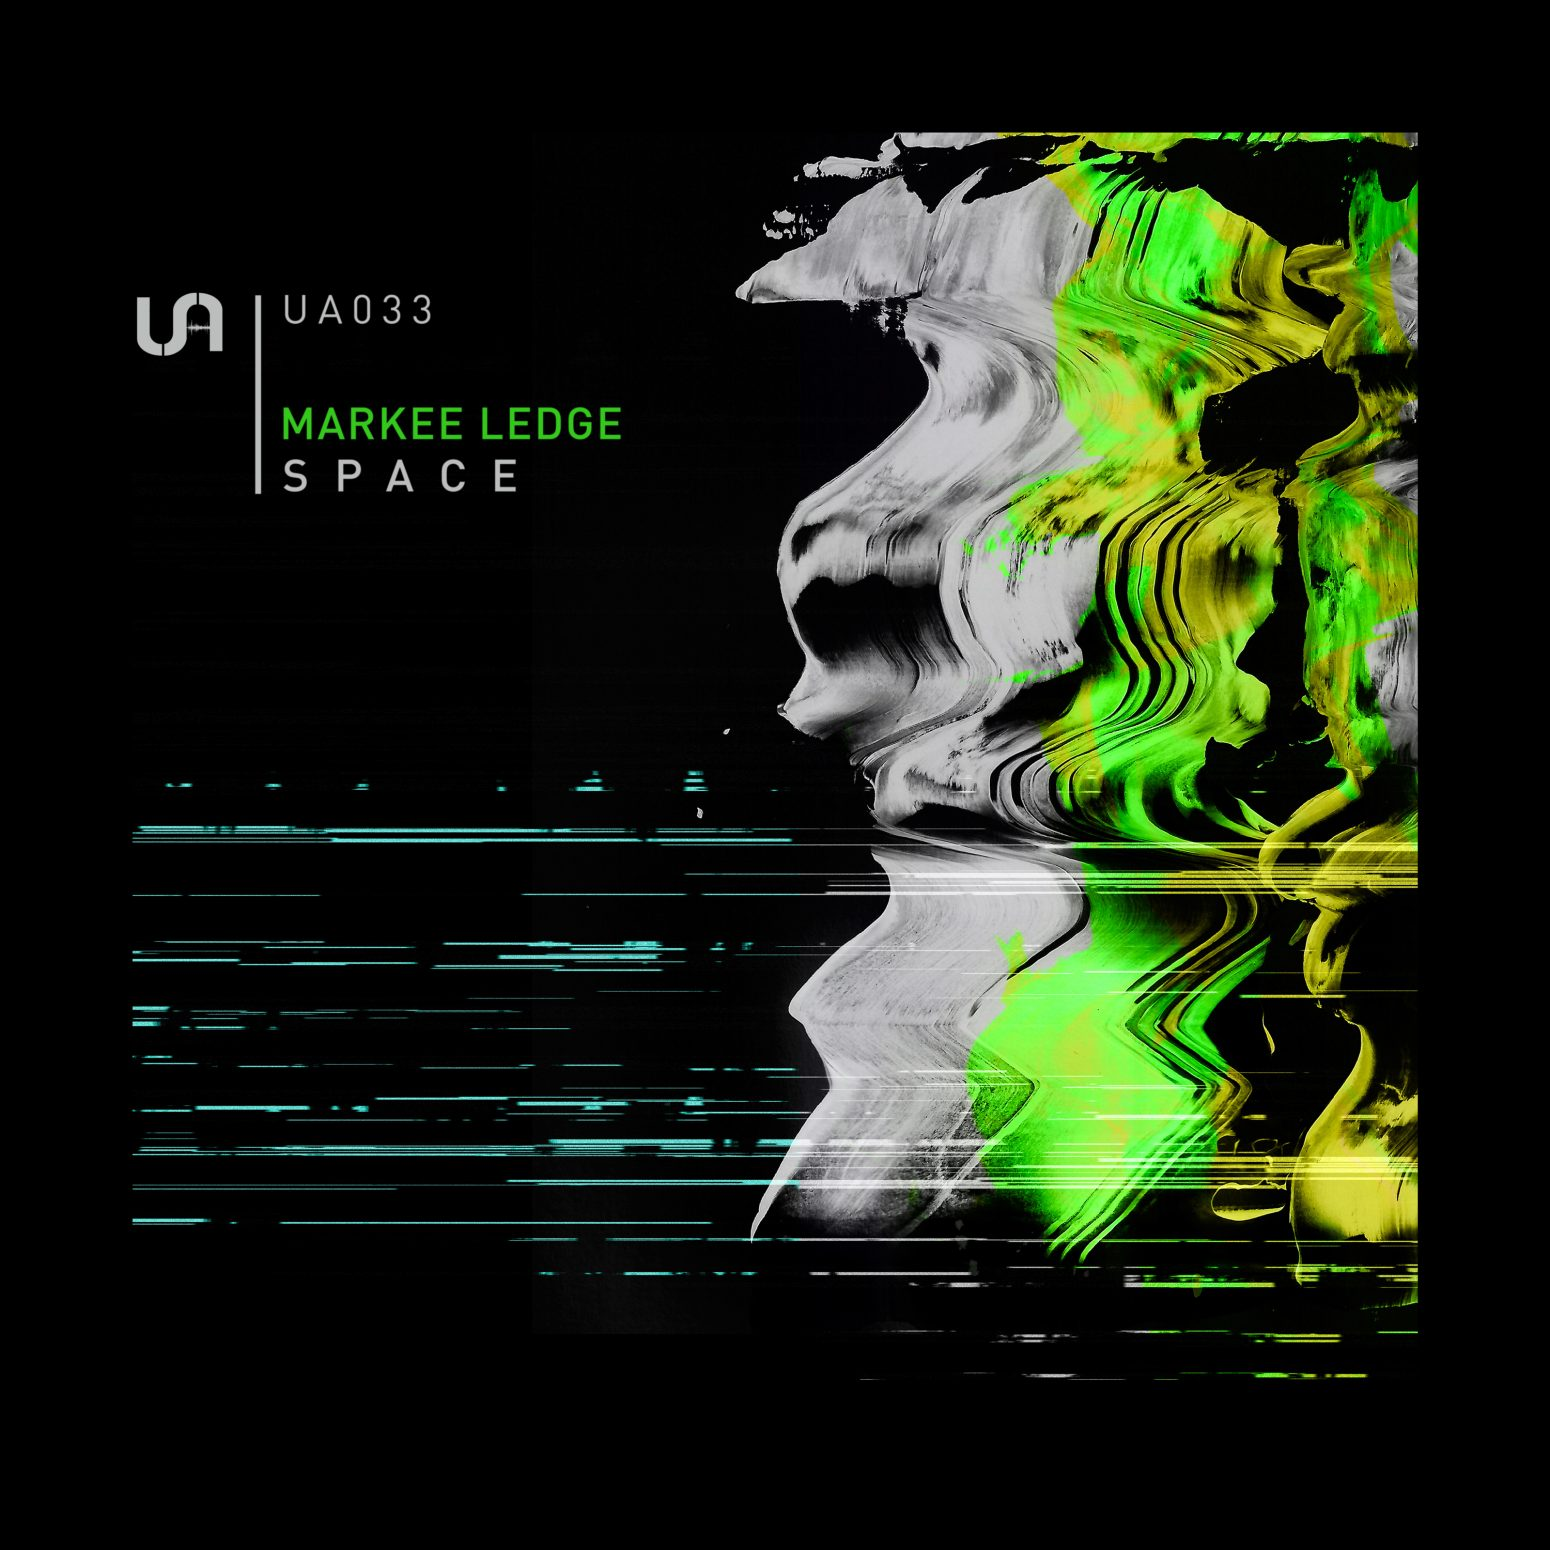 UA033: Markee Ledge - Space